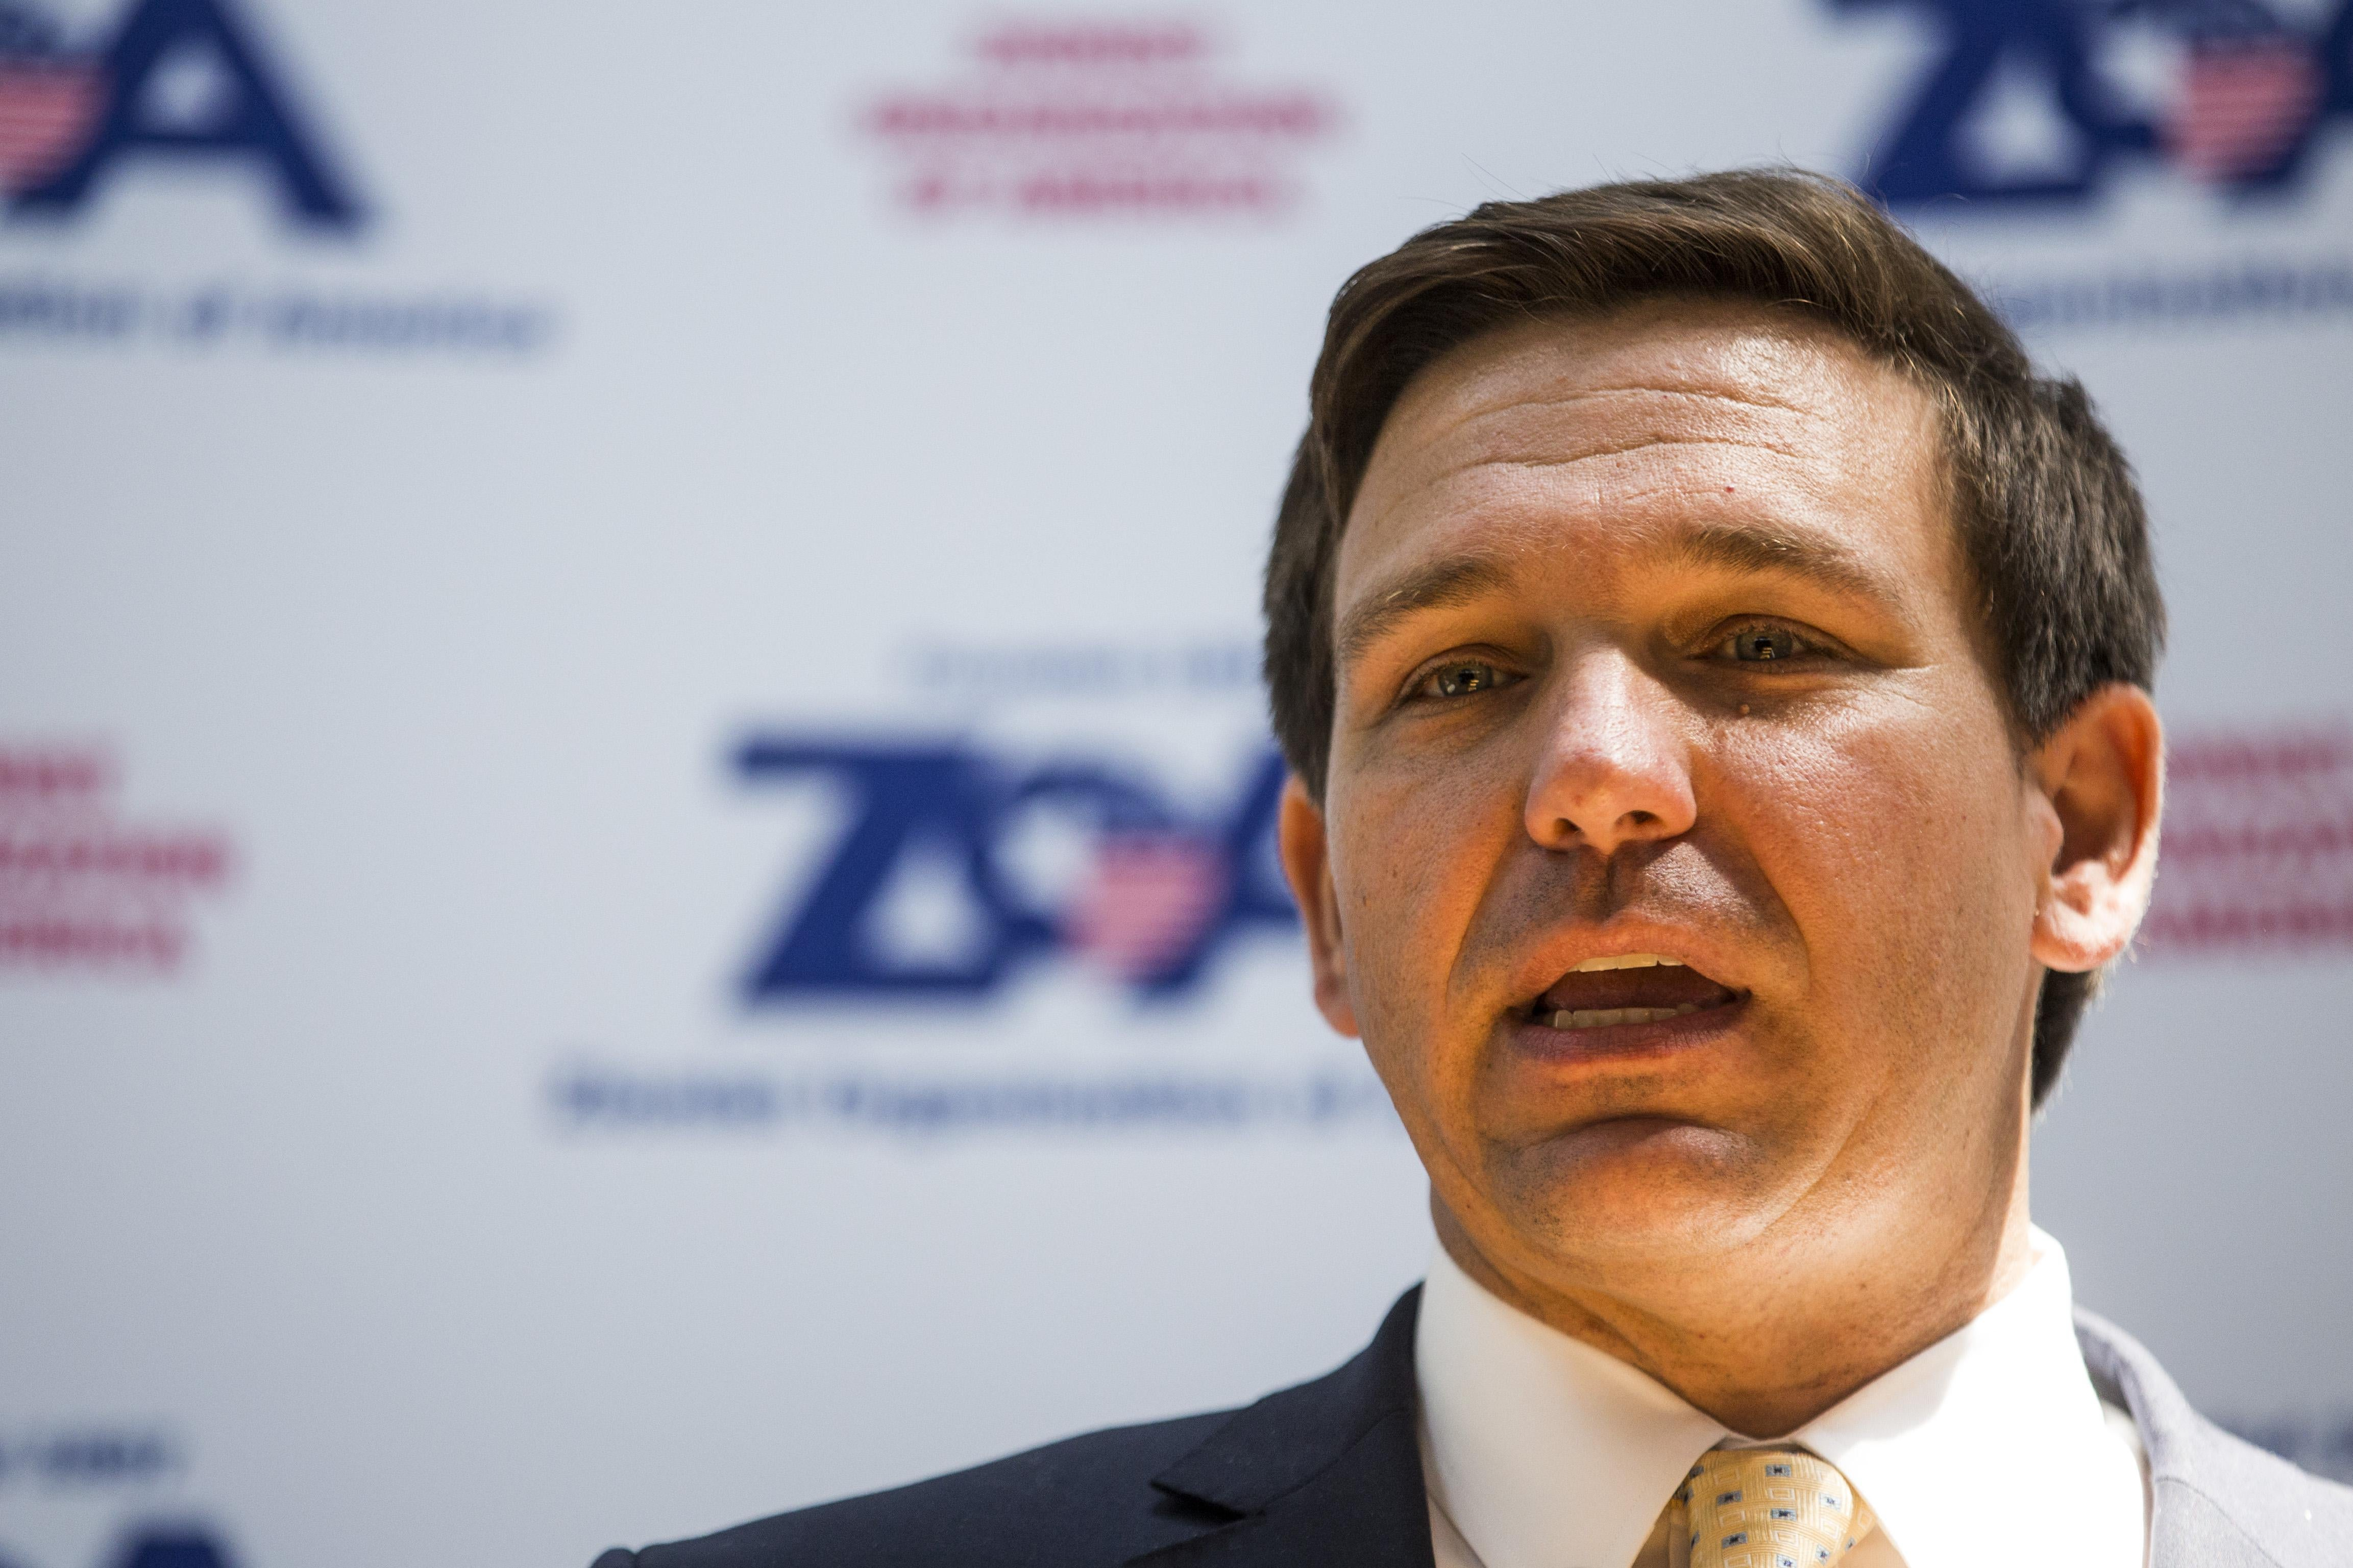 Florida Rep. Ron DeSantis speaking in front of a banner for the Zionist Organization of America.